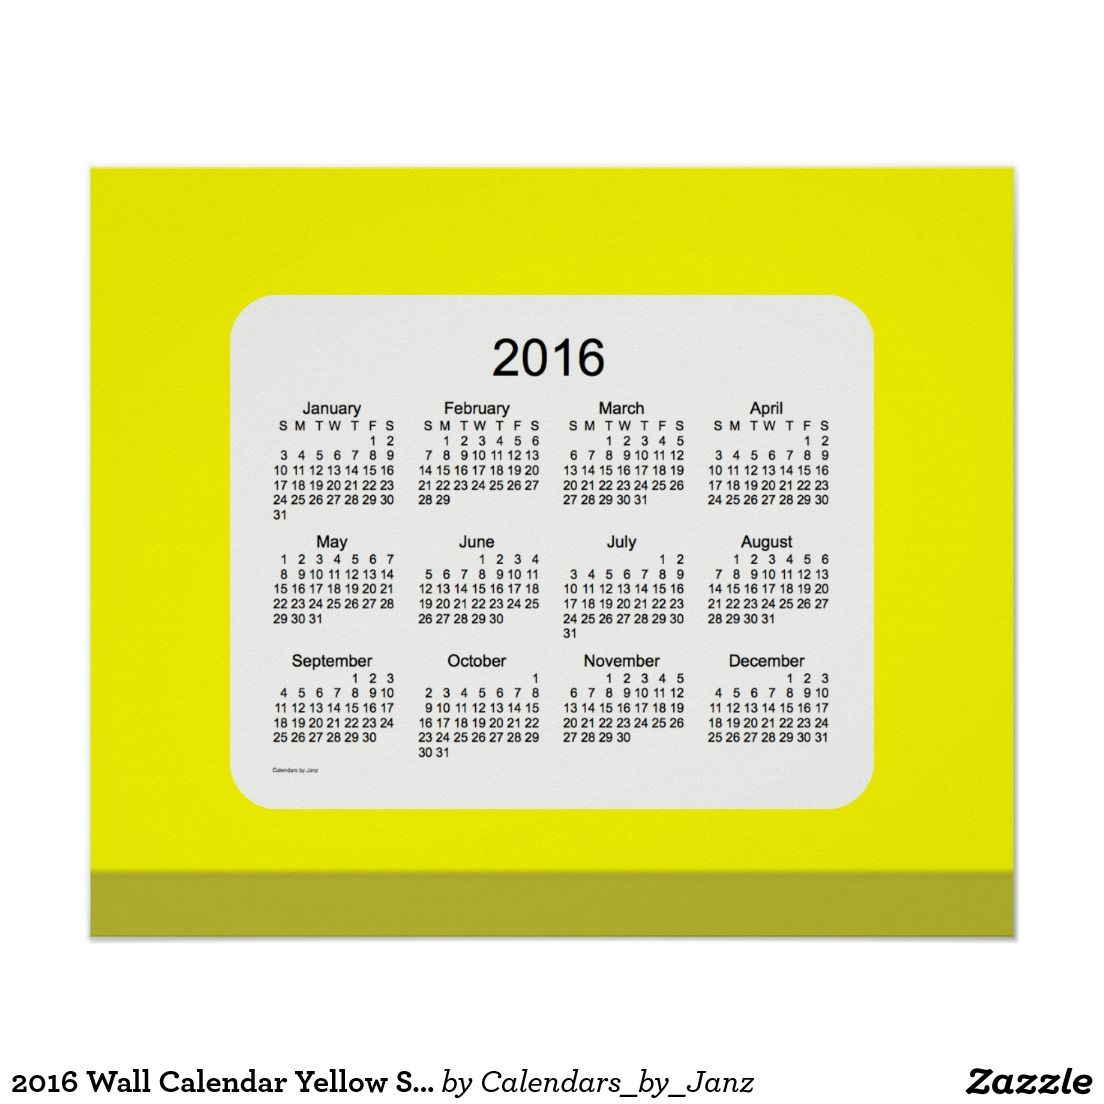 2016 Wall Calendar Yellow Shades Print | Christmas Gift Ideas ...